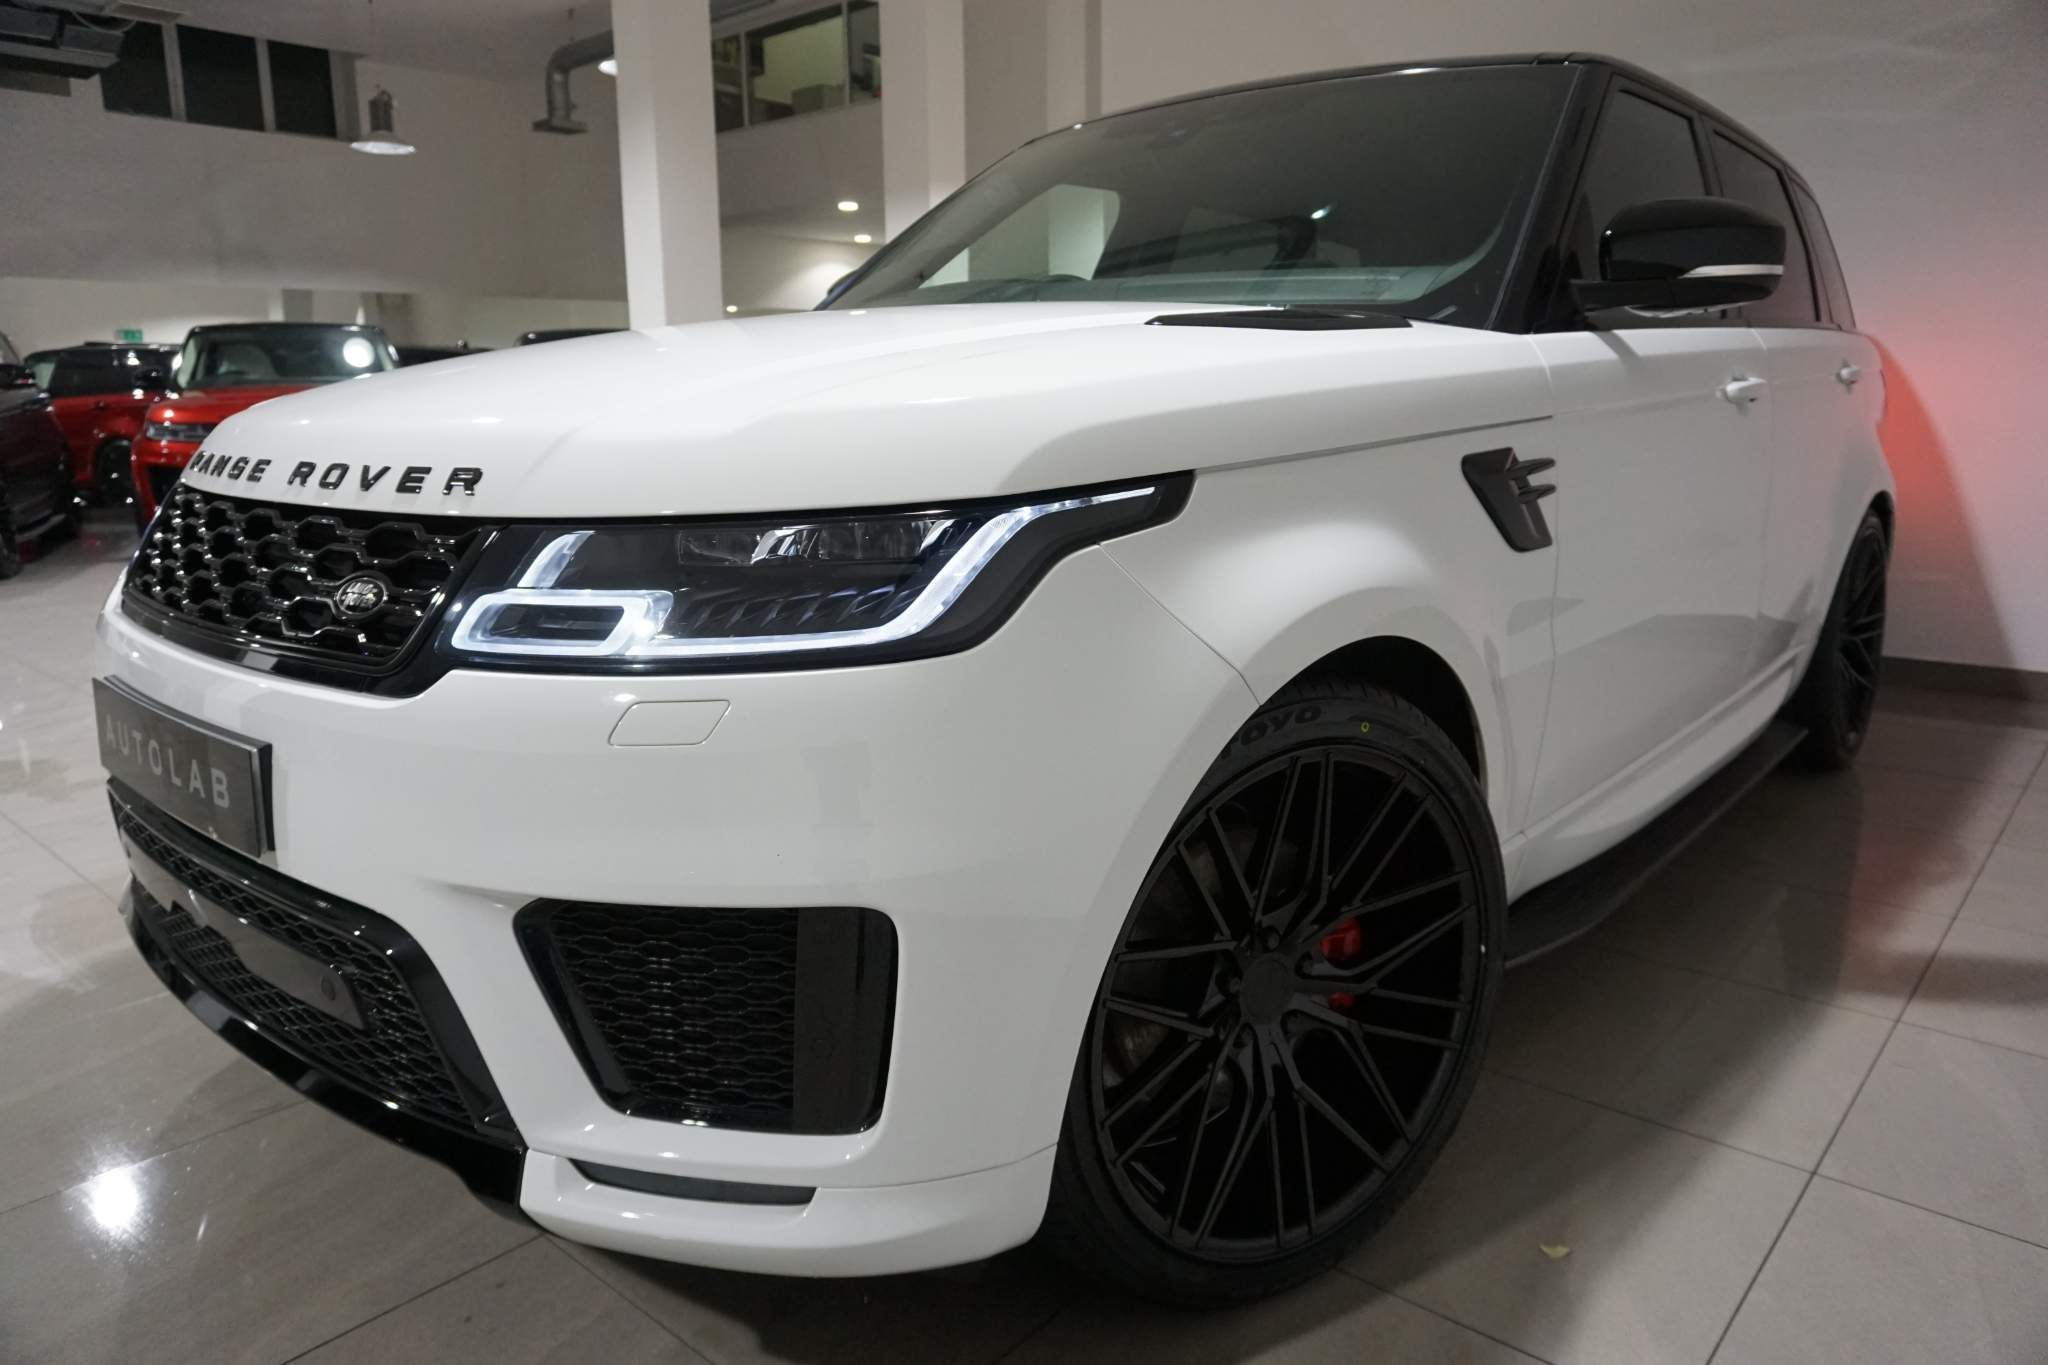 Land Rover Range Rover Sport 2.0 P400e 13.1kWh GPF HSE Auto 4WD (s/s) 5dr